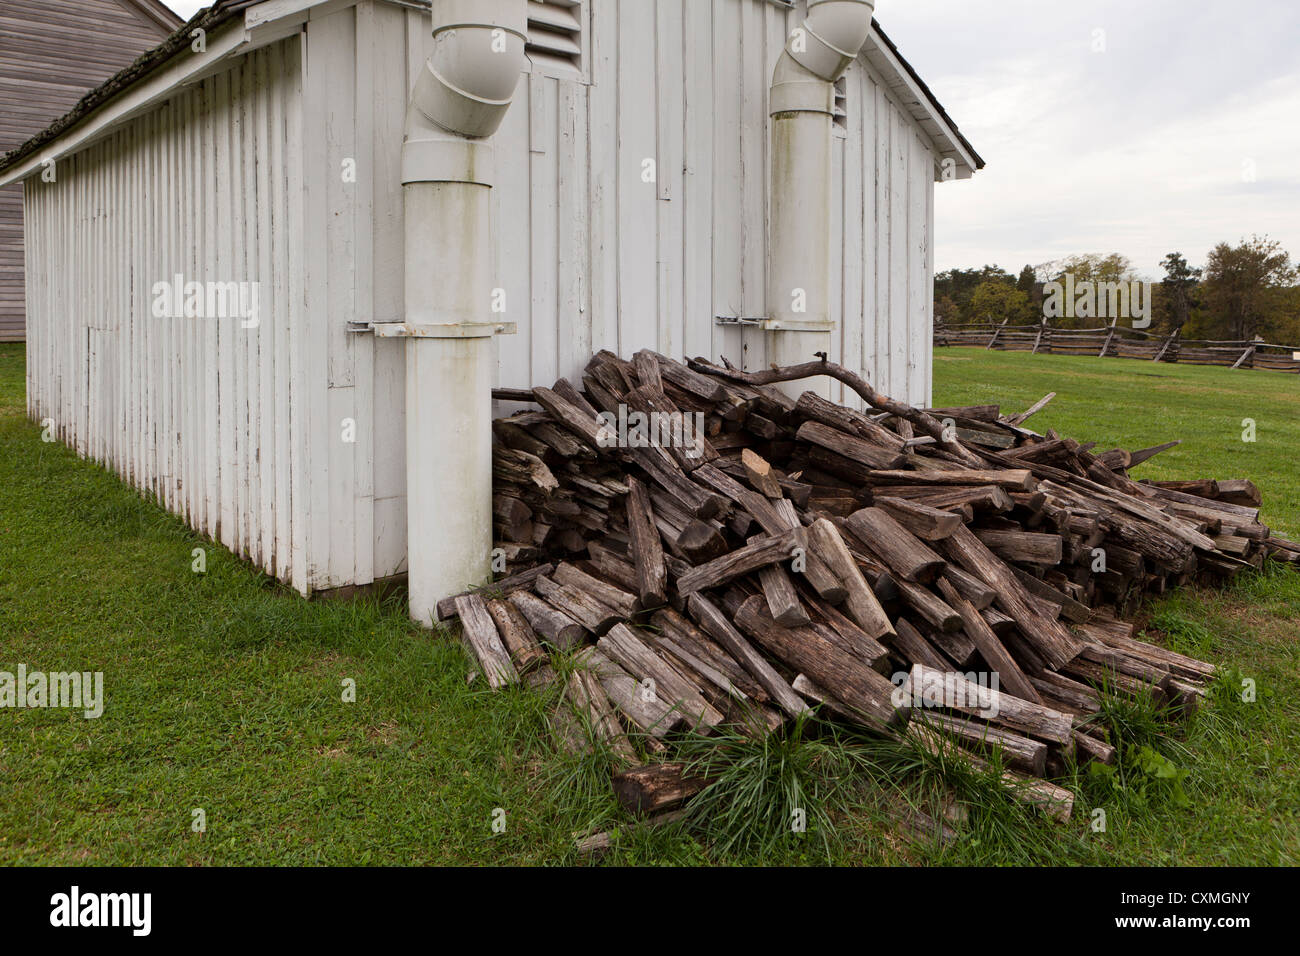 Firewood pile in the back of shed - Stock Image